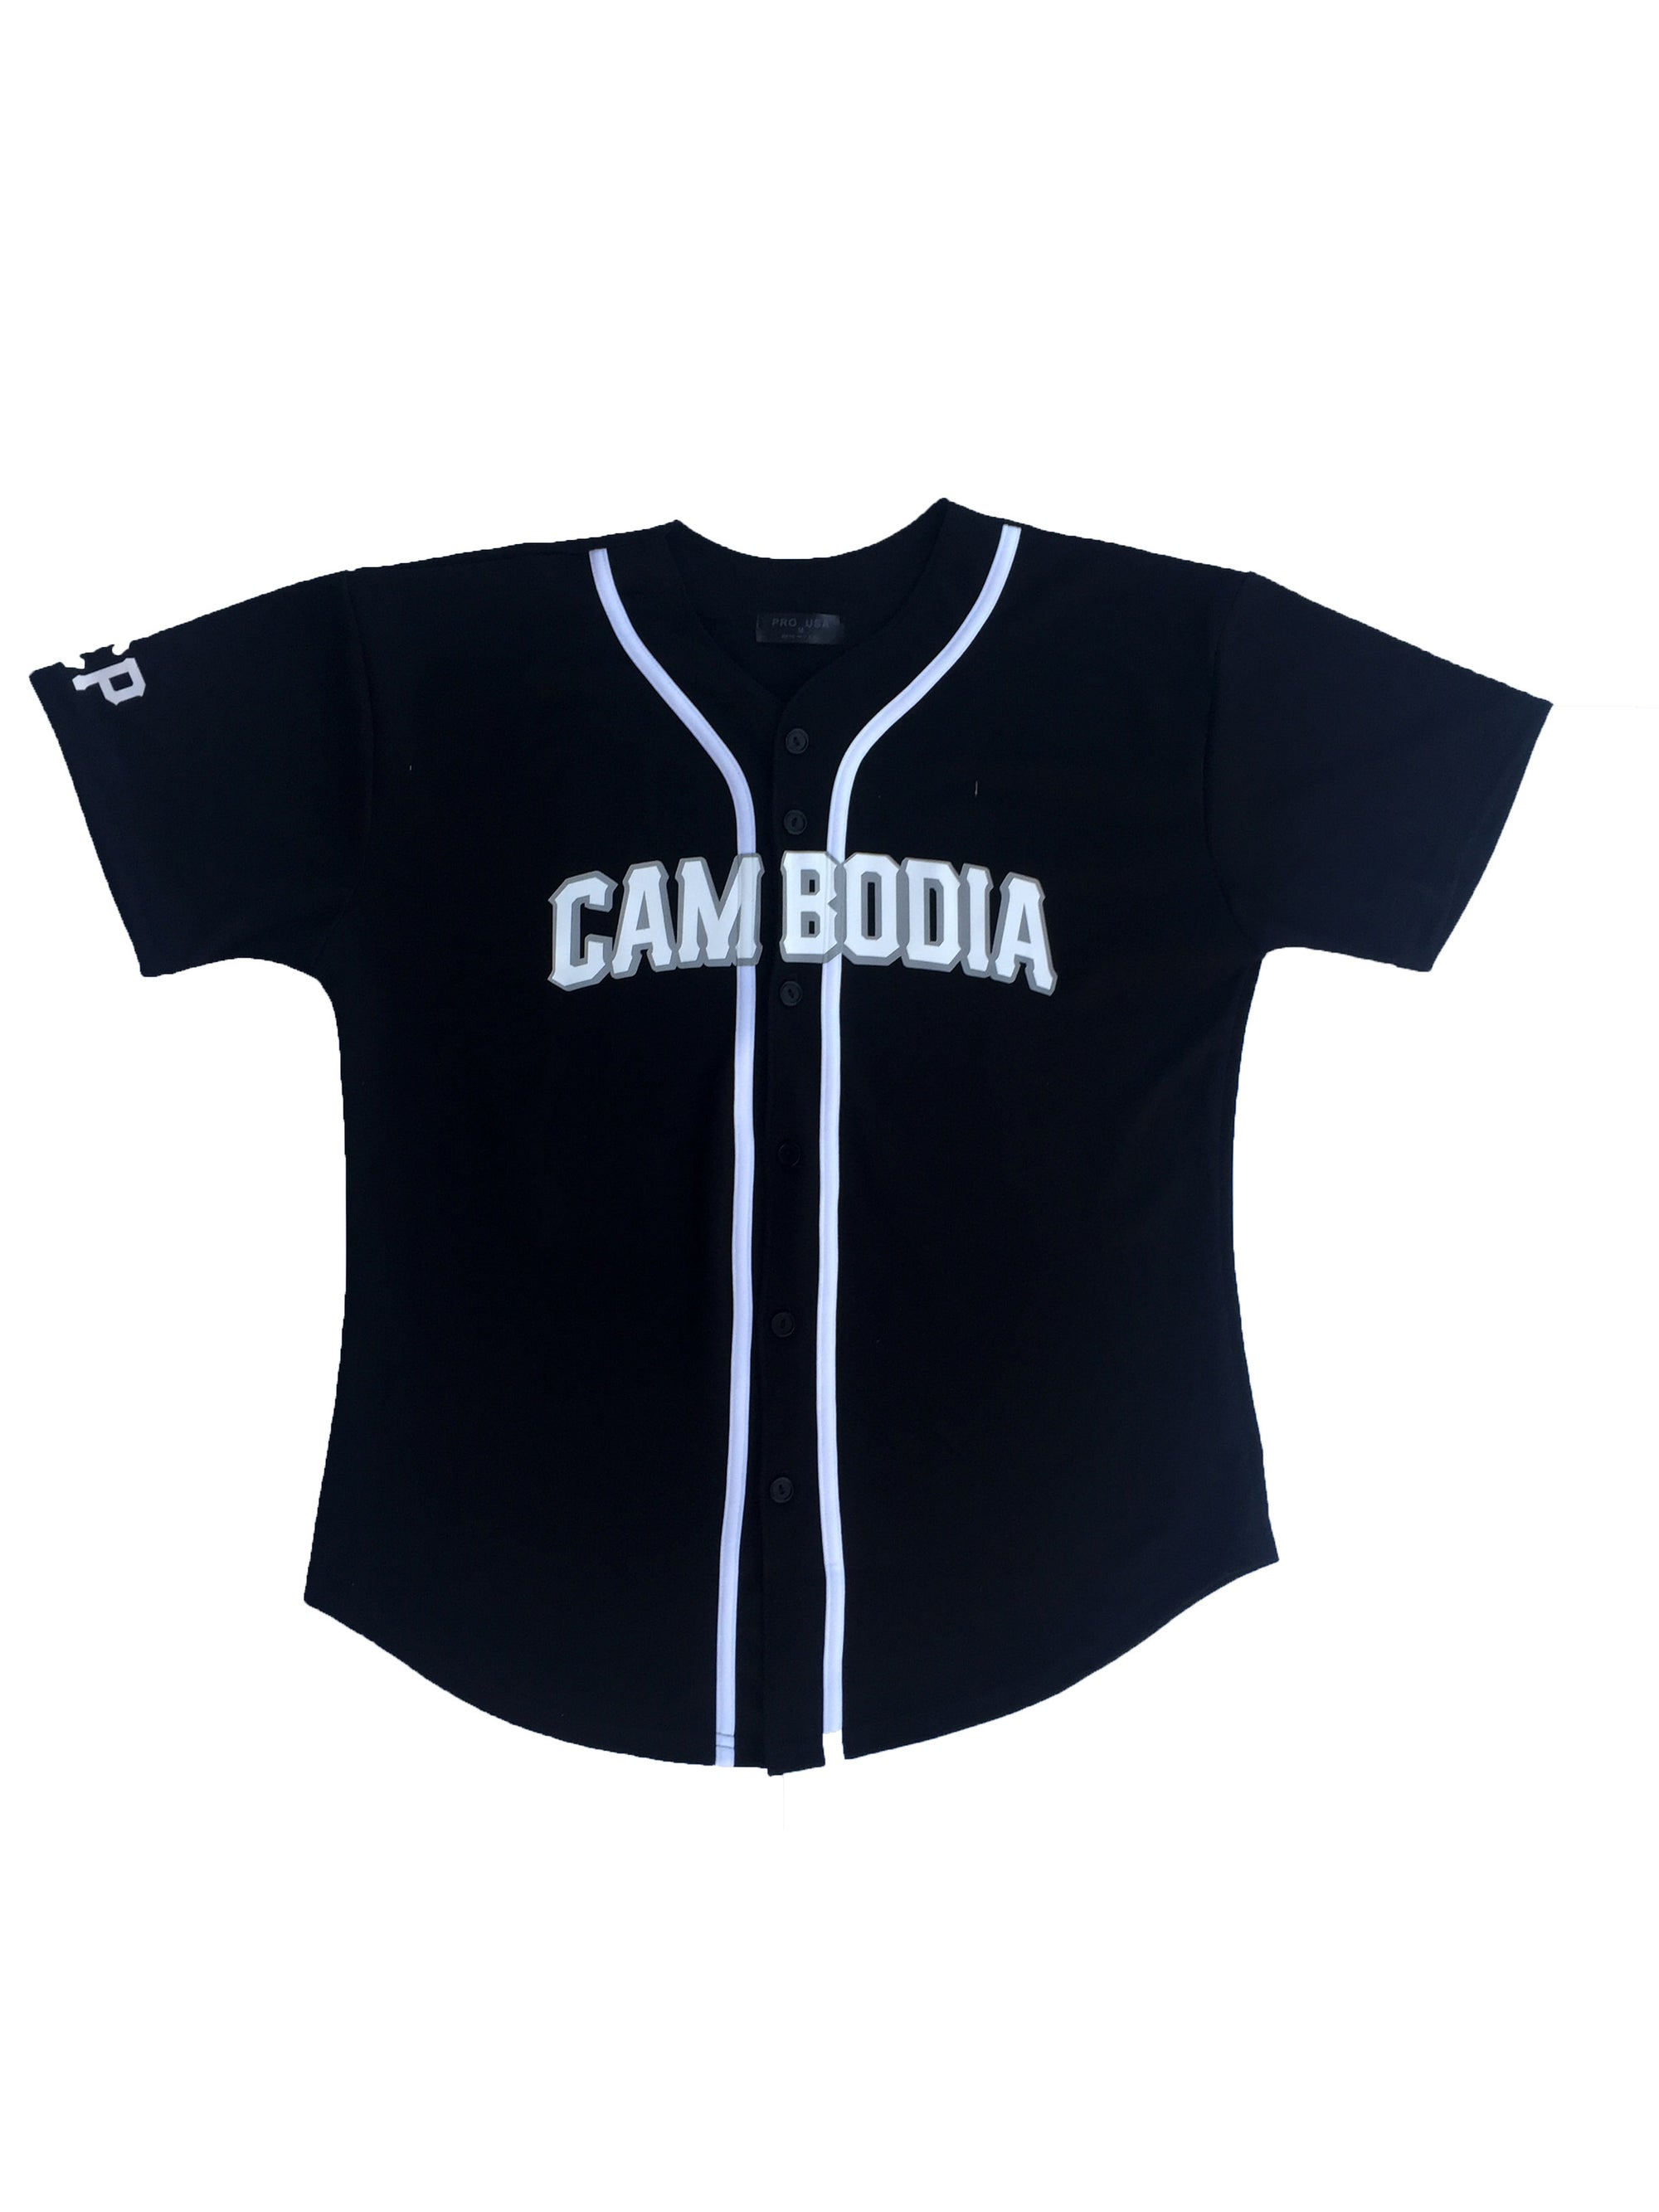 timeless design b882f 56067 REP CAMBODIA BASEBALL JERSEY